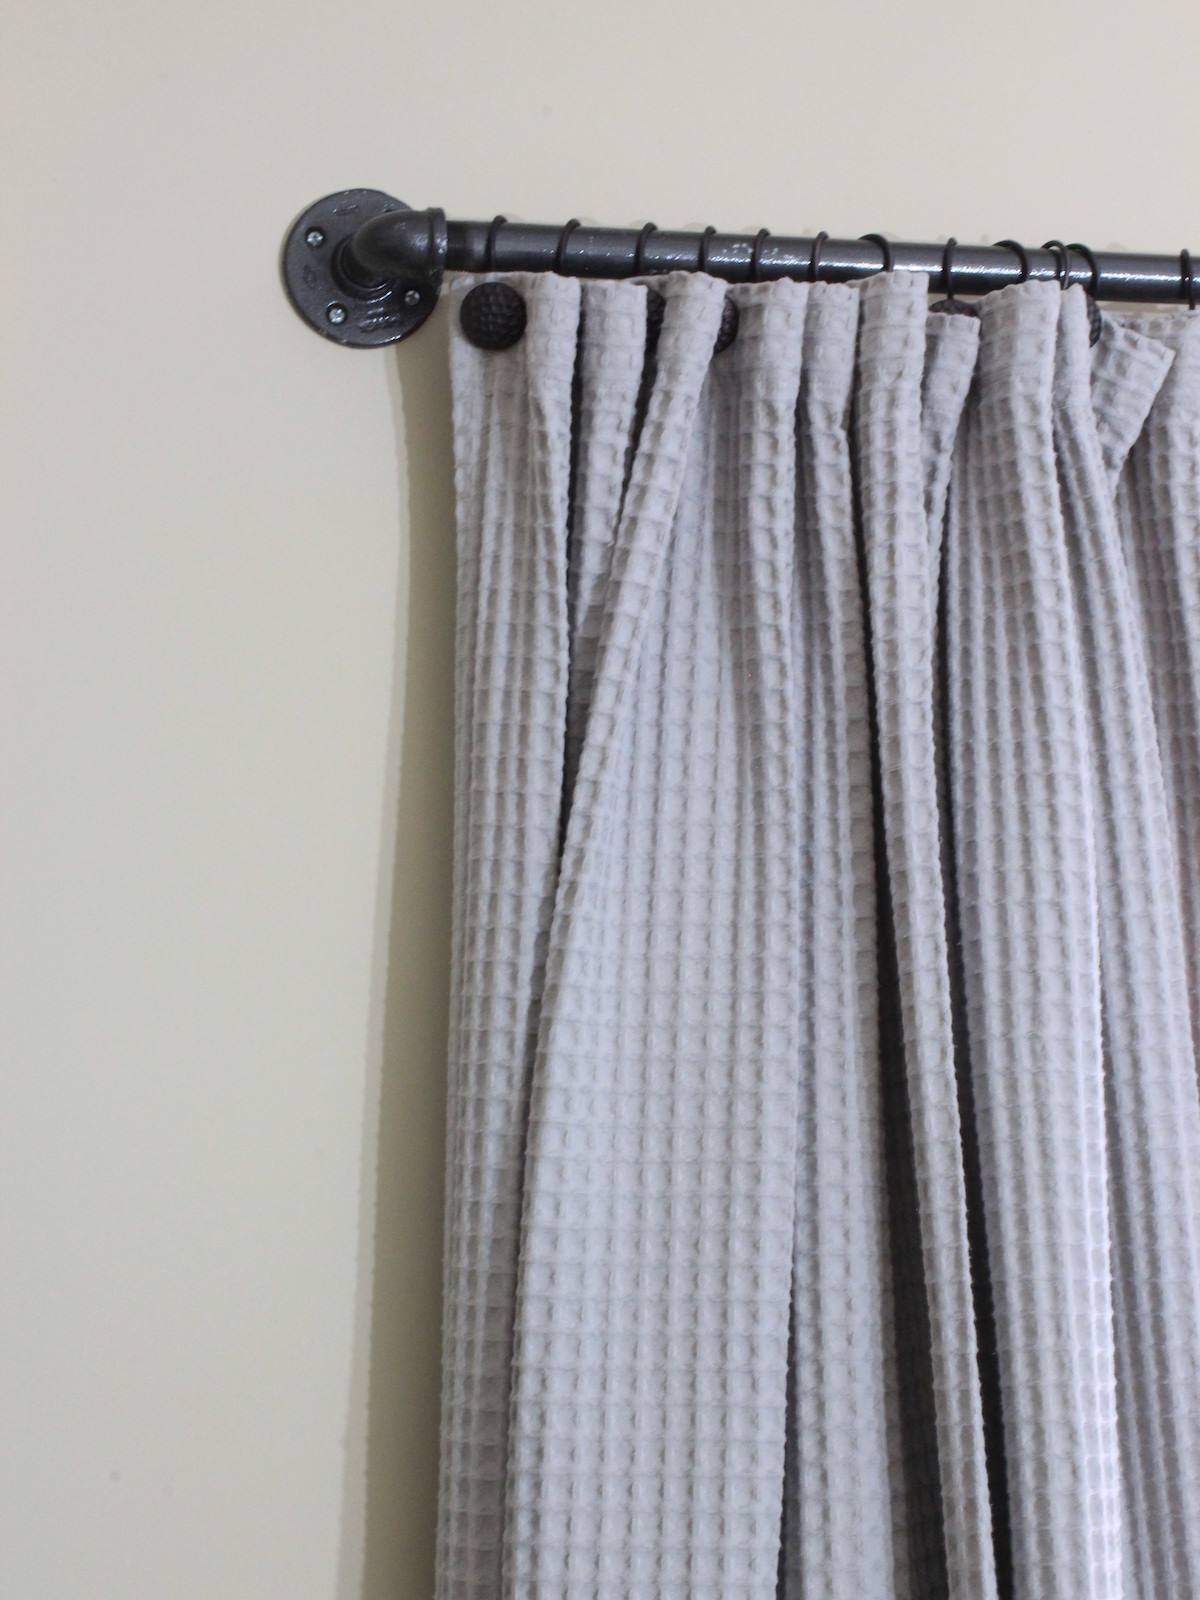 images rod walmart nautical shower shell curtains absorbing long sound curtain